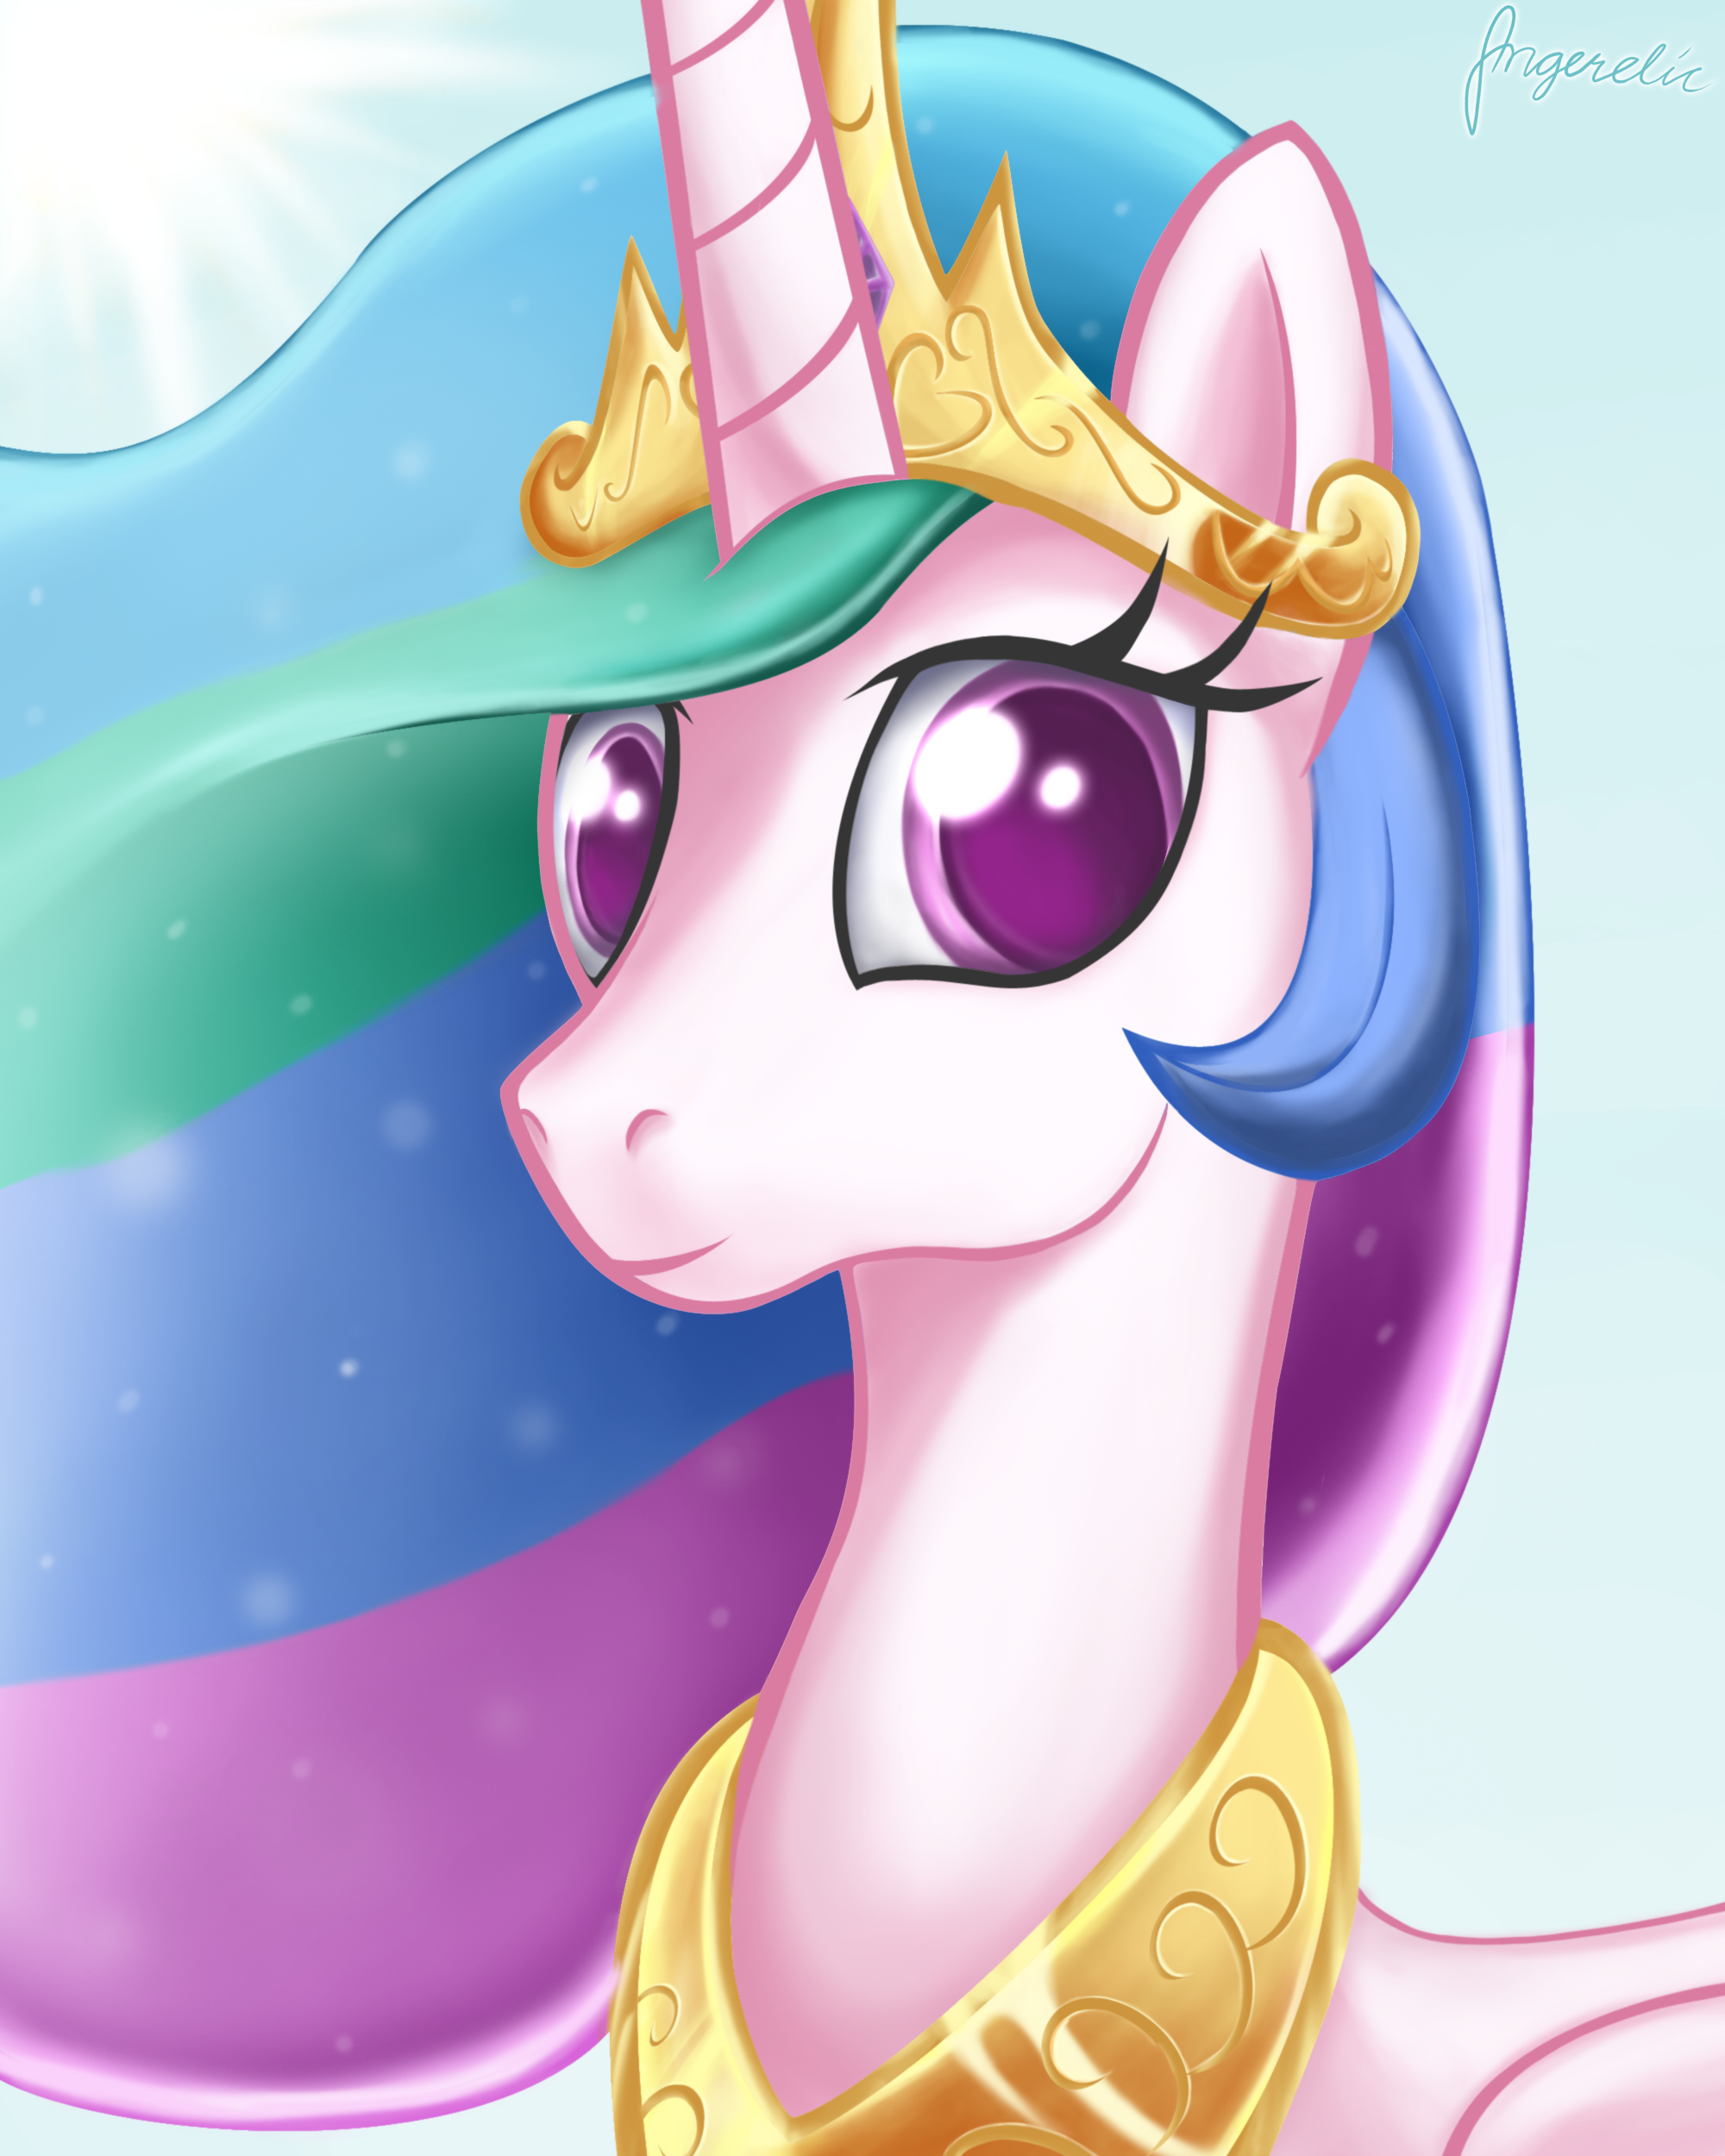 Celestia by Angerelic